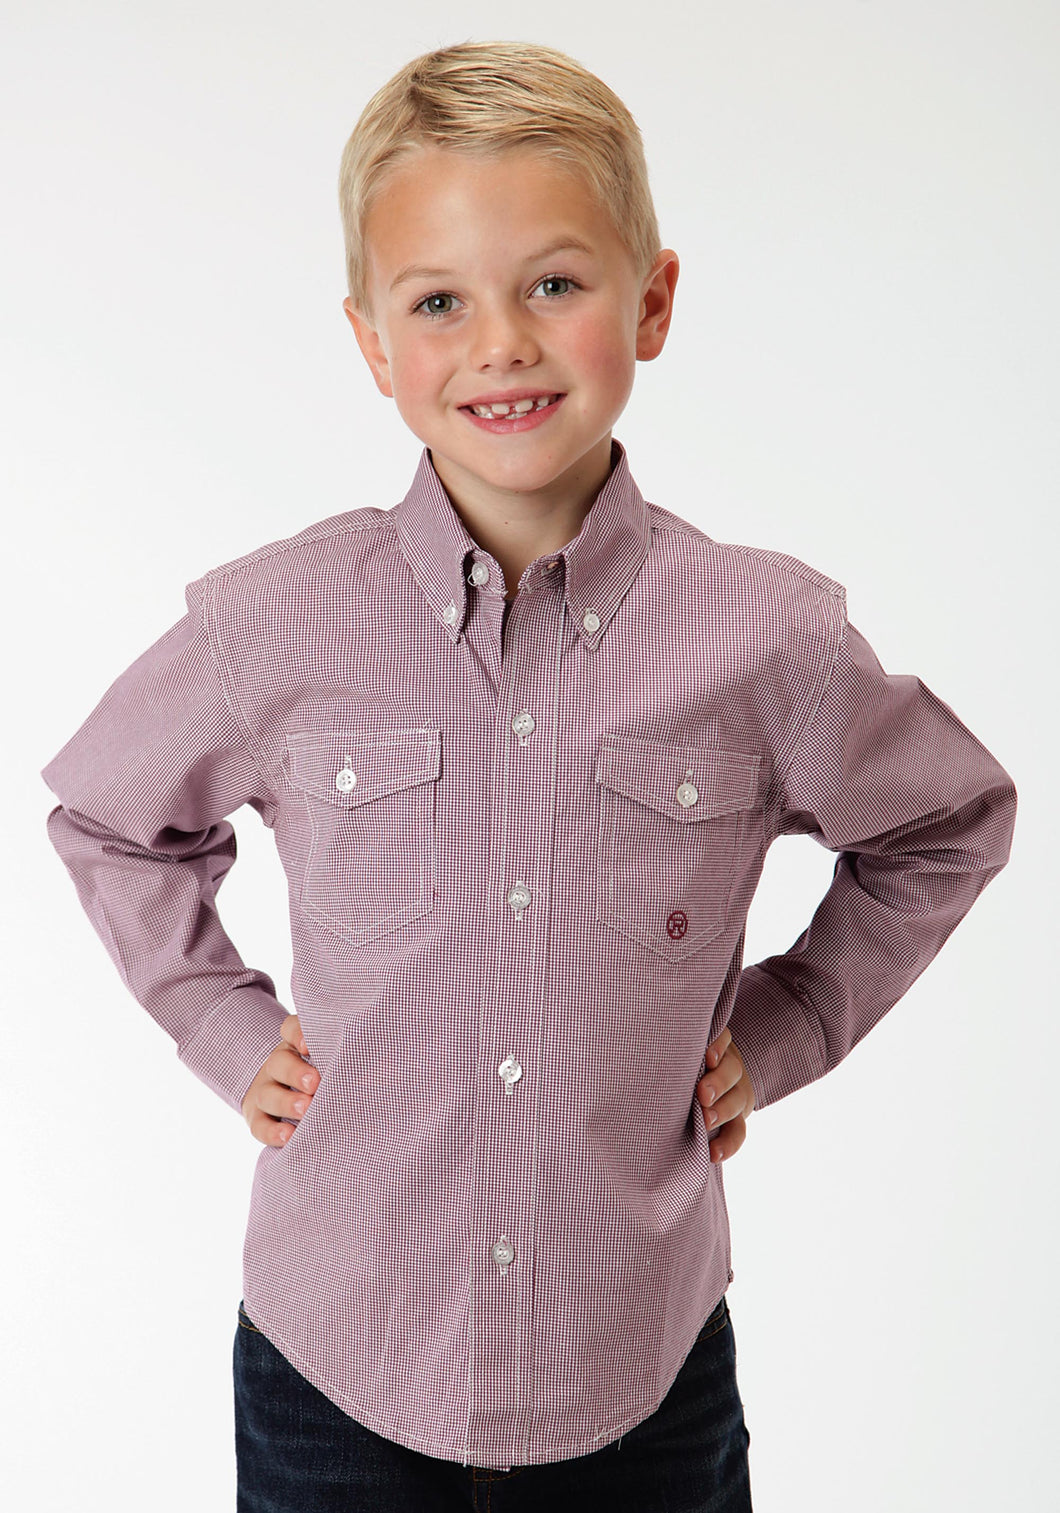 Boys Amarillo Collection- Teal Glass Amarillo Boys Long Sleeve Shirt 0707 Mini Check - Wine